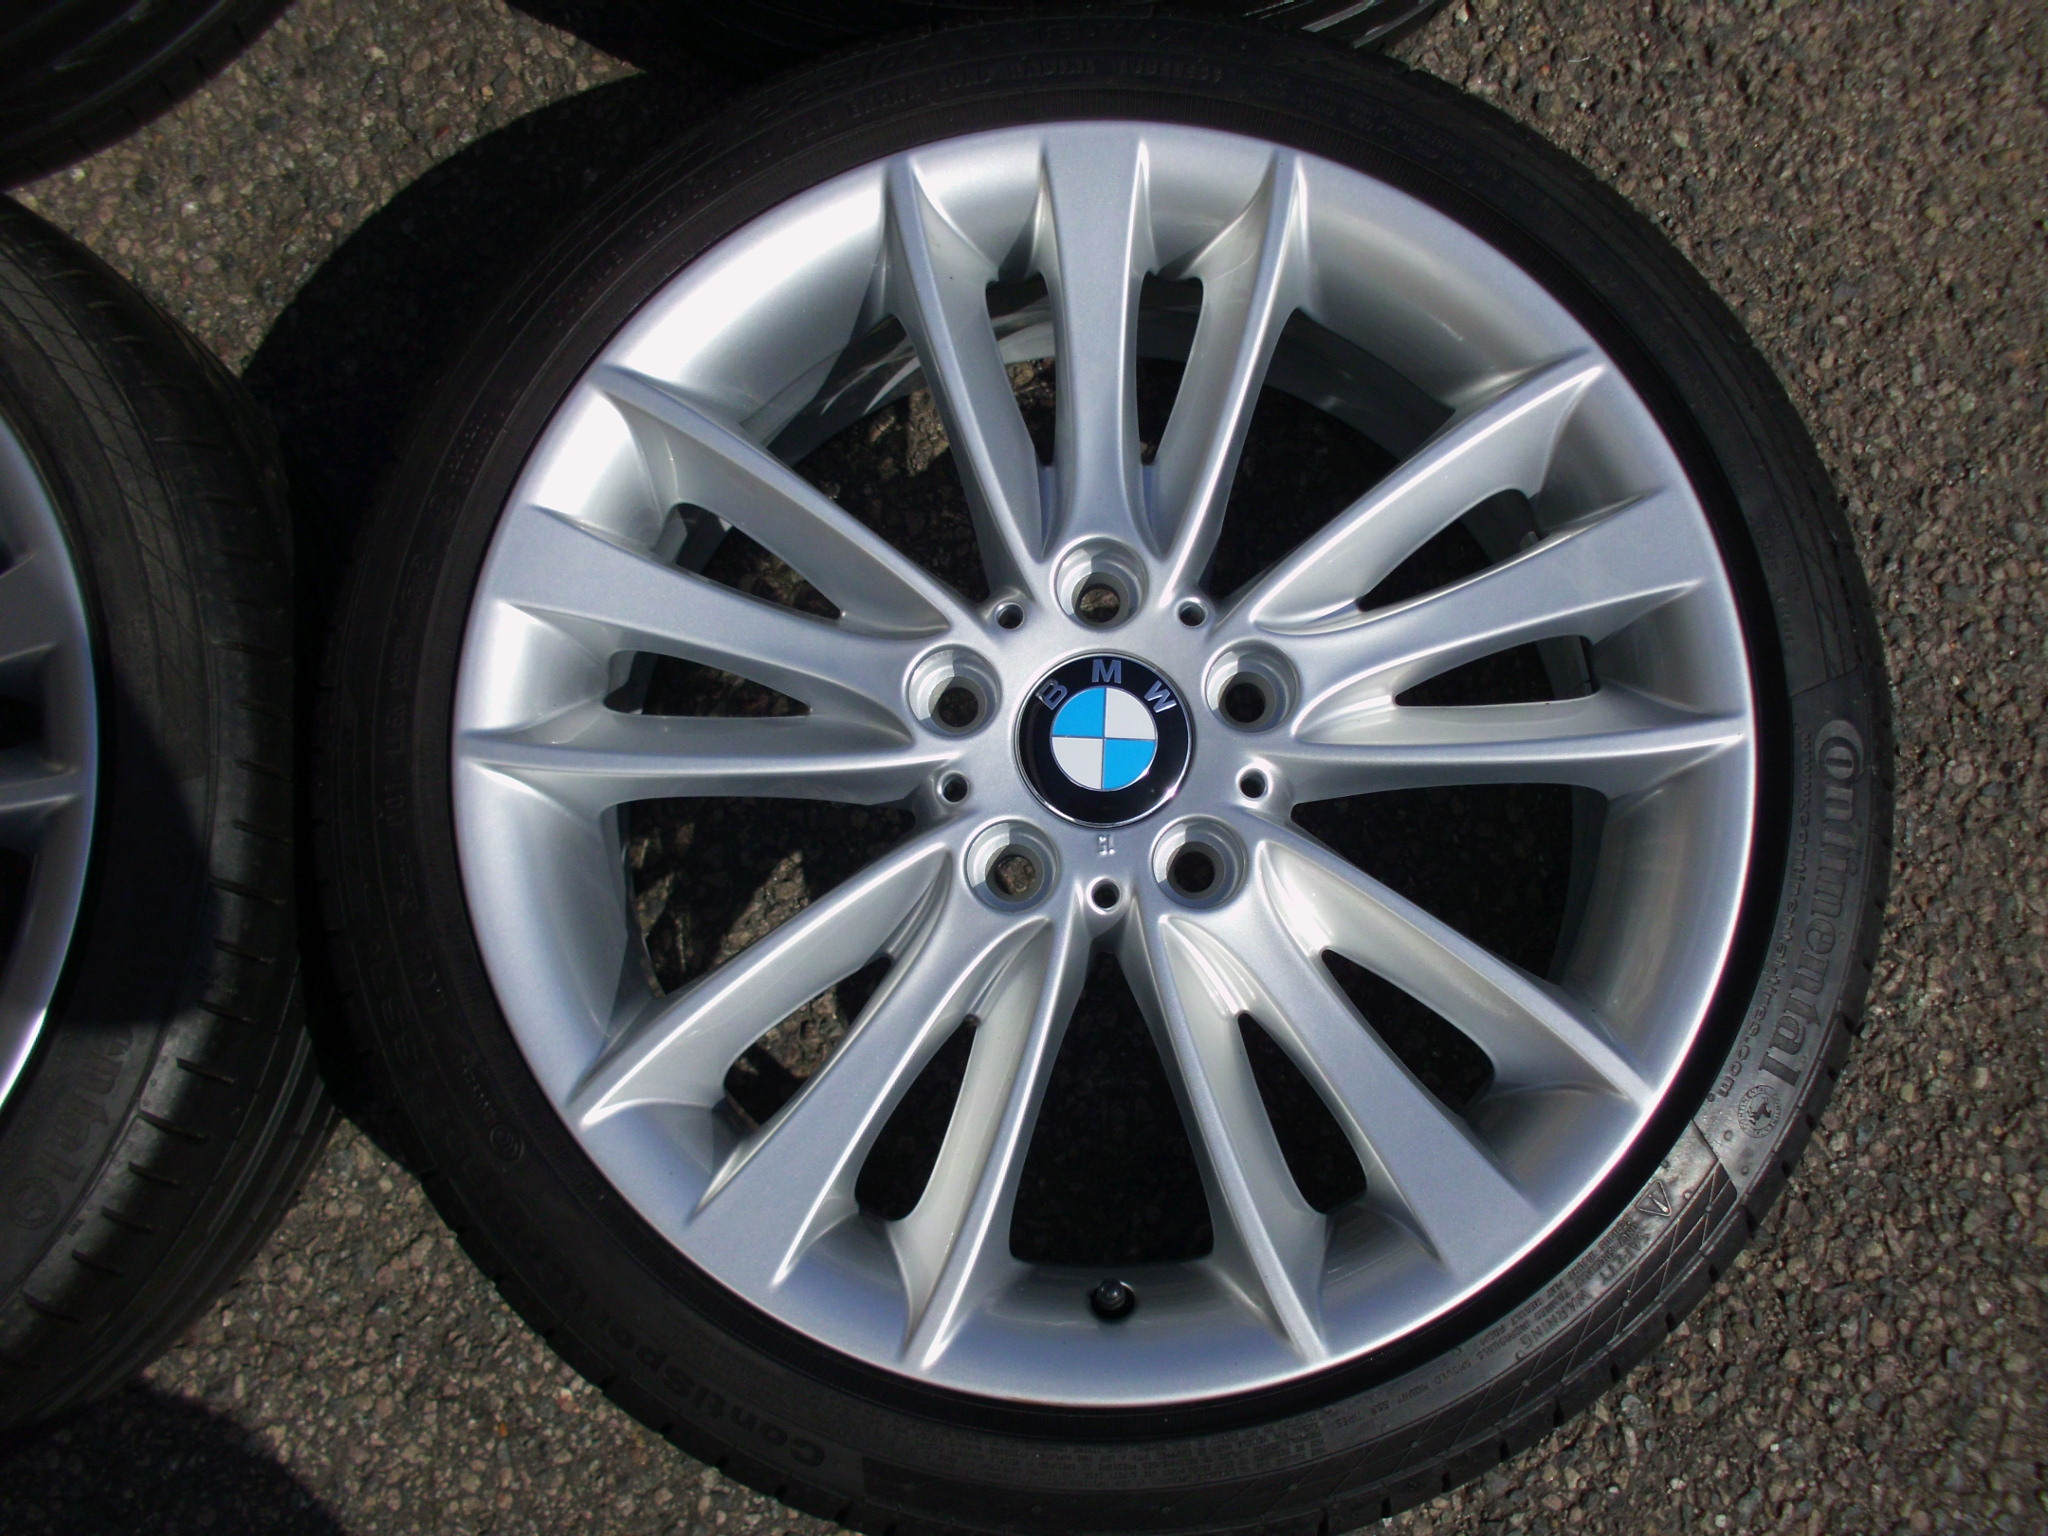 "USED 18"" GENUINE STYLE 263 1 SERIES W SPOKE ALLOY WHEELS, FULLY REFURBED INC GOOD RUNFLAT TYRES"